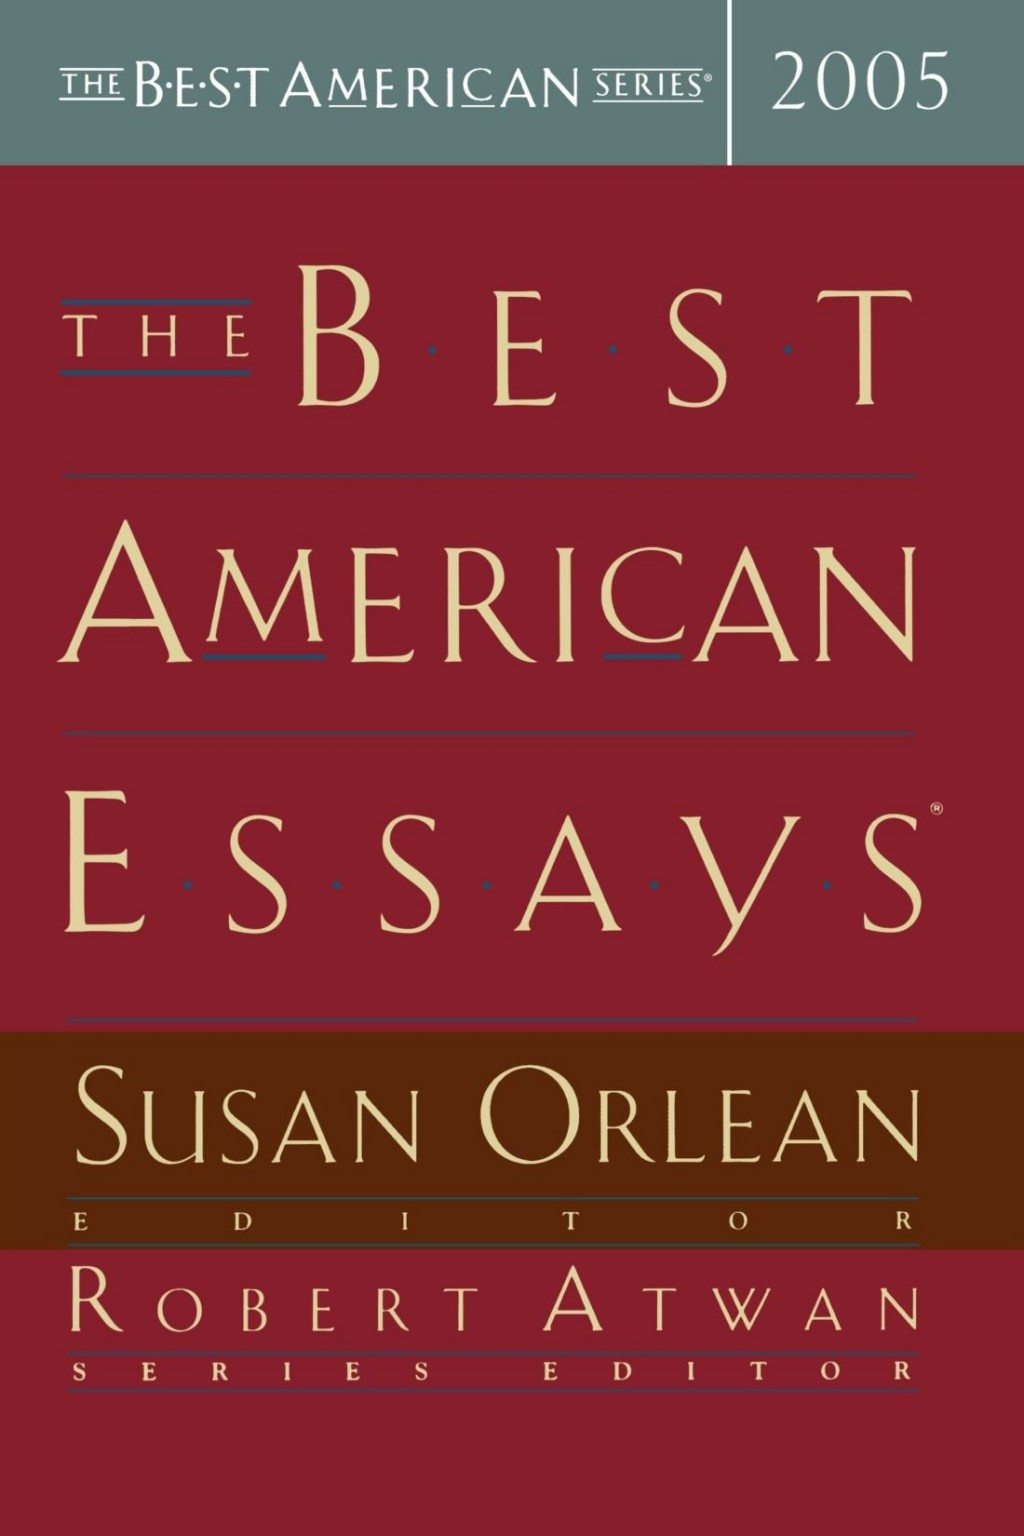 010 Essay Example Best American Essays Striking 2017 Table Of Contents The Century Pdf Large